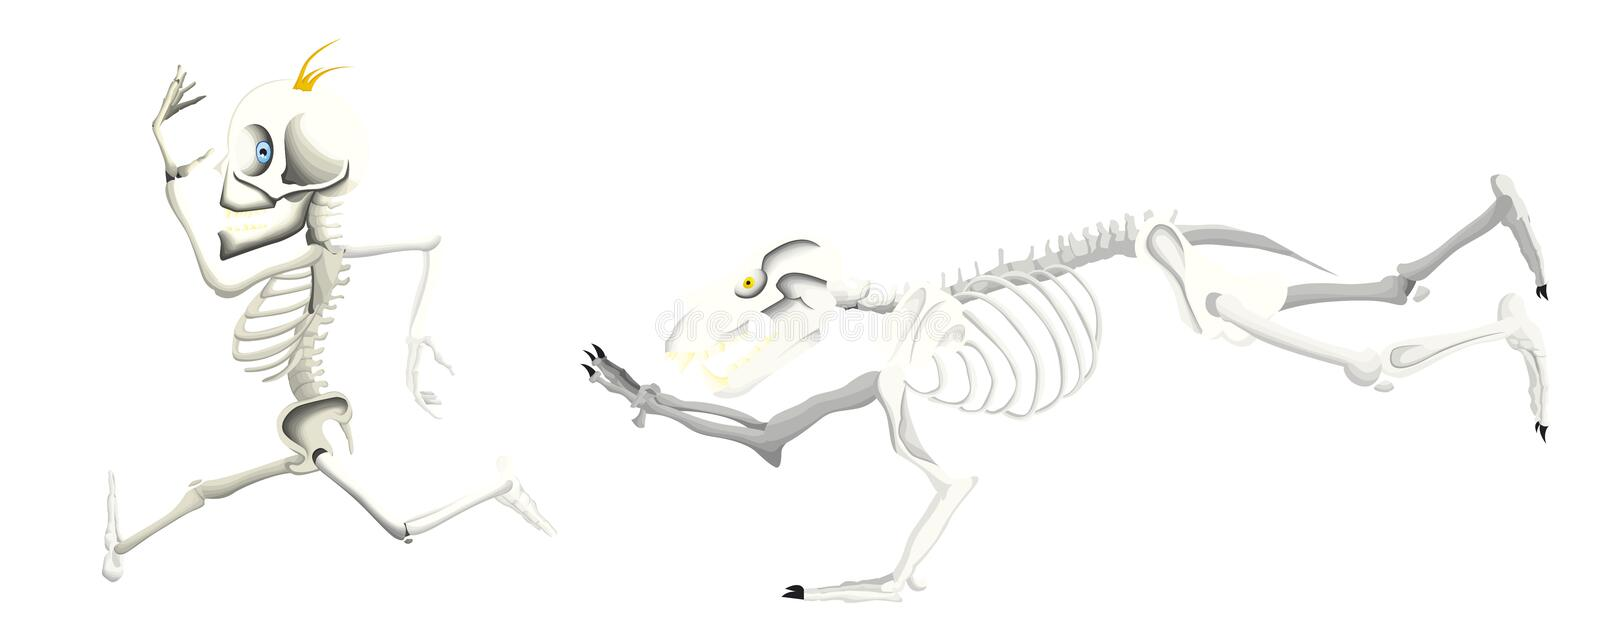 Bear skeleton try to catch a man skeleton. A bear skeleton running after a man skeleton because he is hungry stock illustration